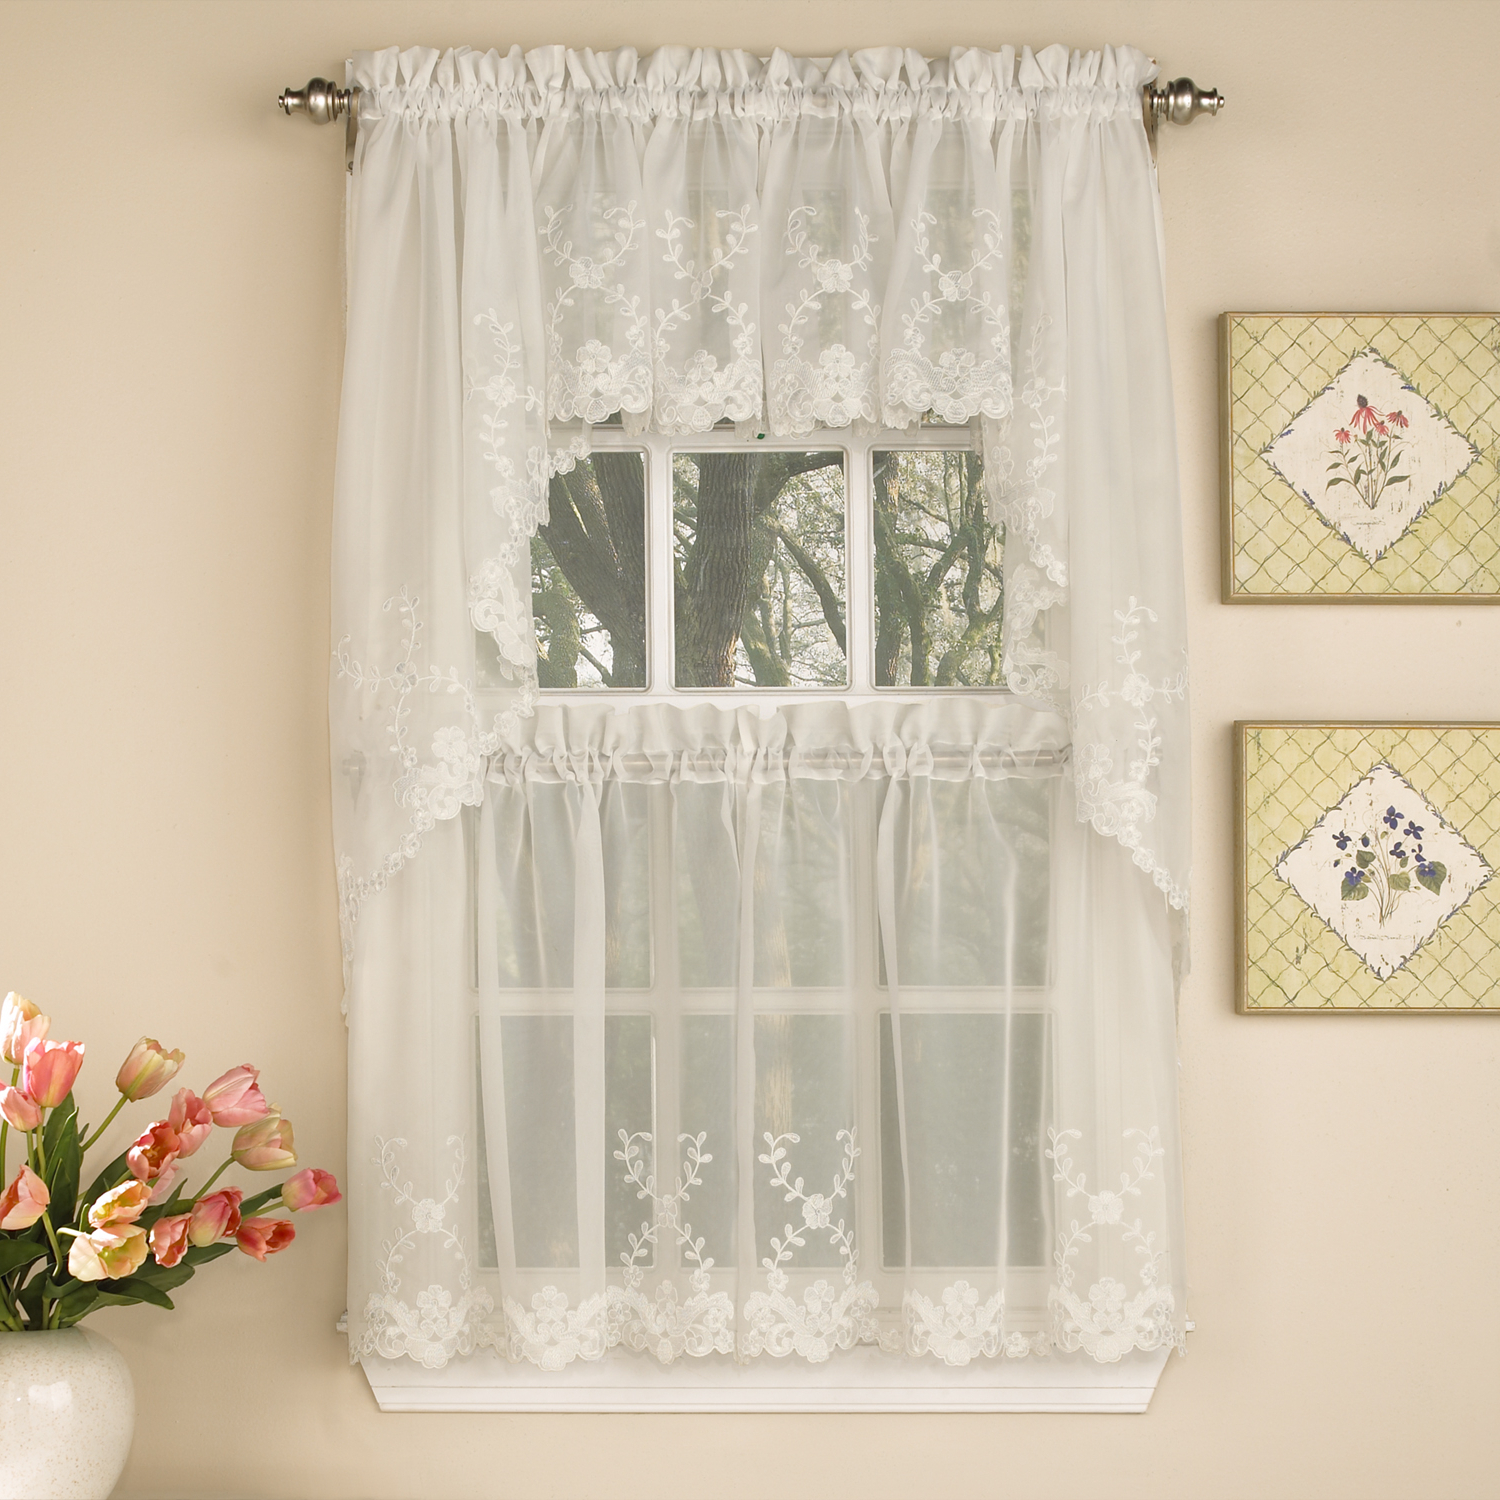 Floral Lace Rod Pocket Kitchen Curtain Valance And Tiers Sets Pertaining To Newest Details About Laurel Leaf Sheer Voile Embroidered Ivory Kitchen Curtains Tier, Valance Or Swag (View 12 of 20)